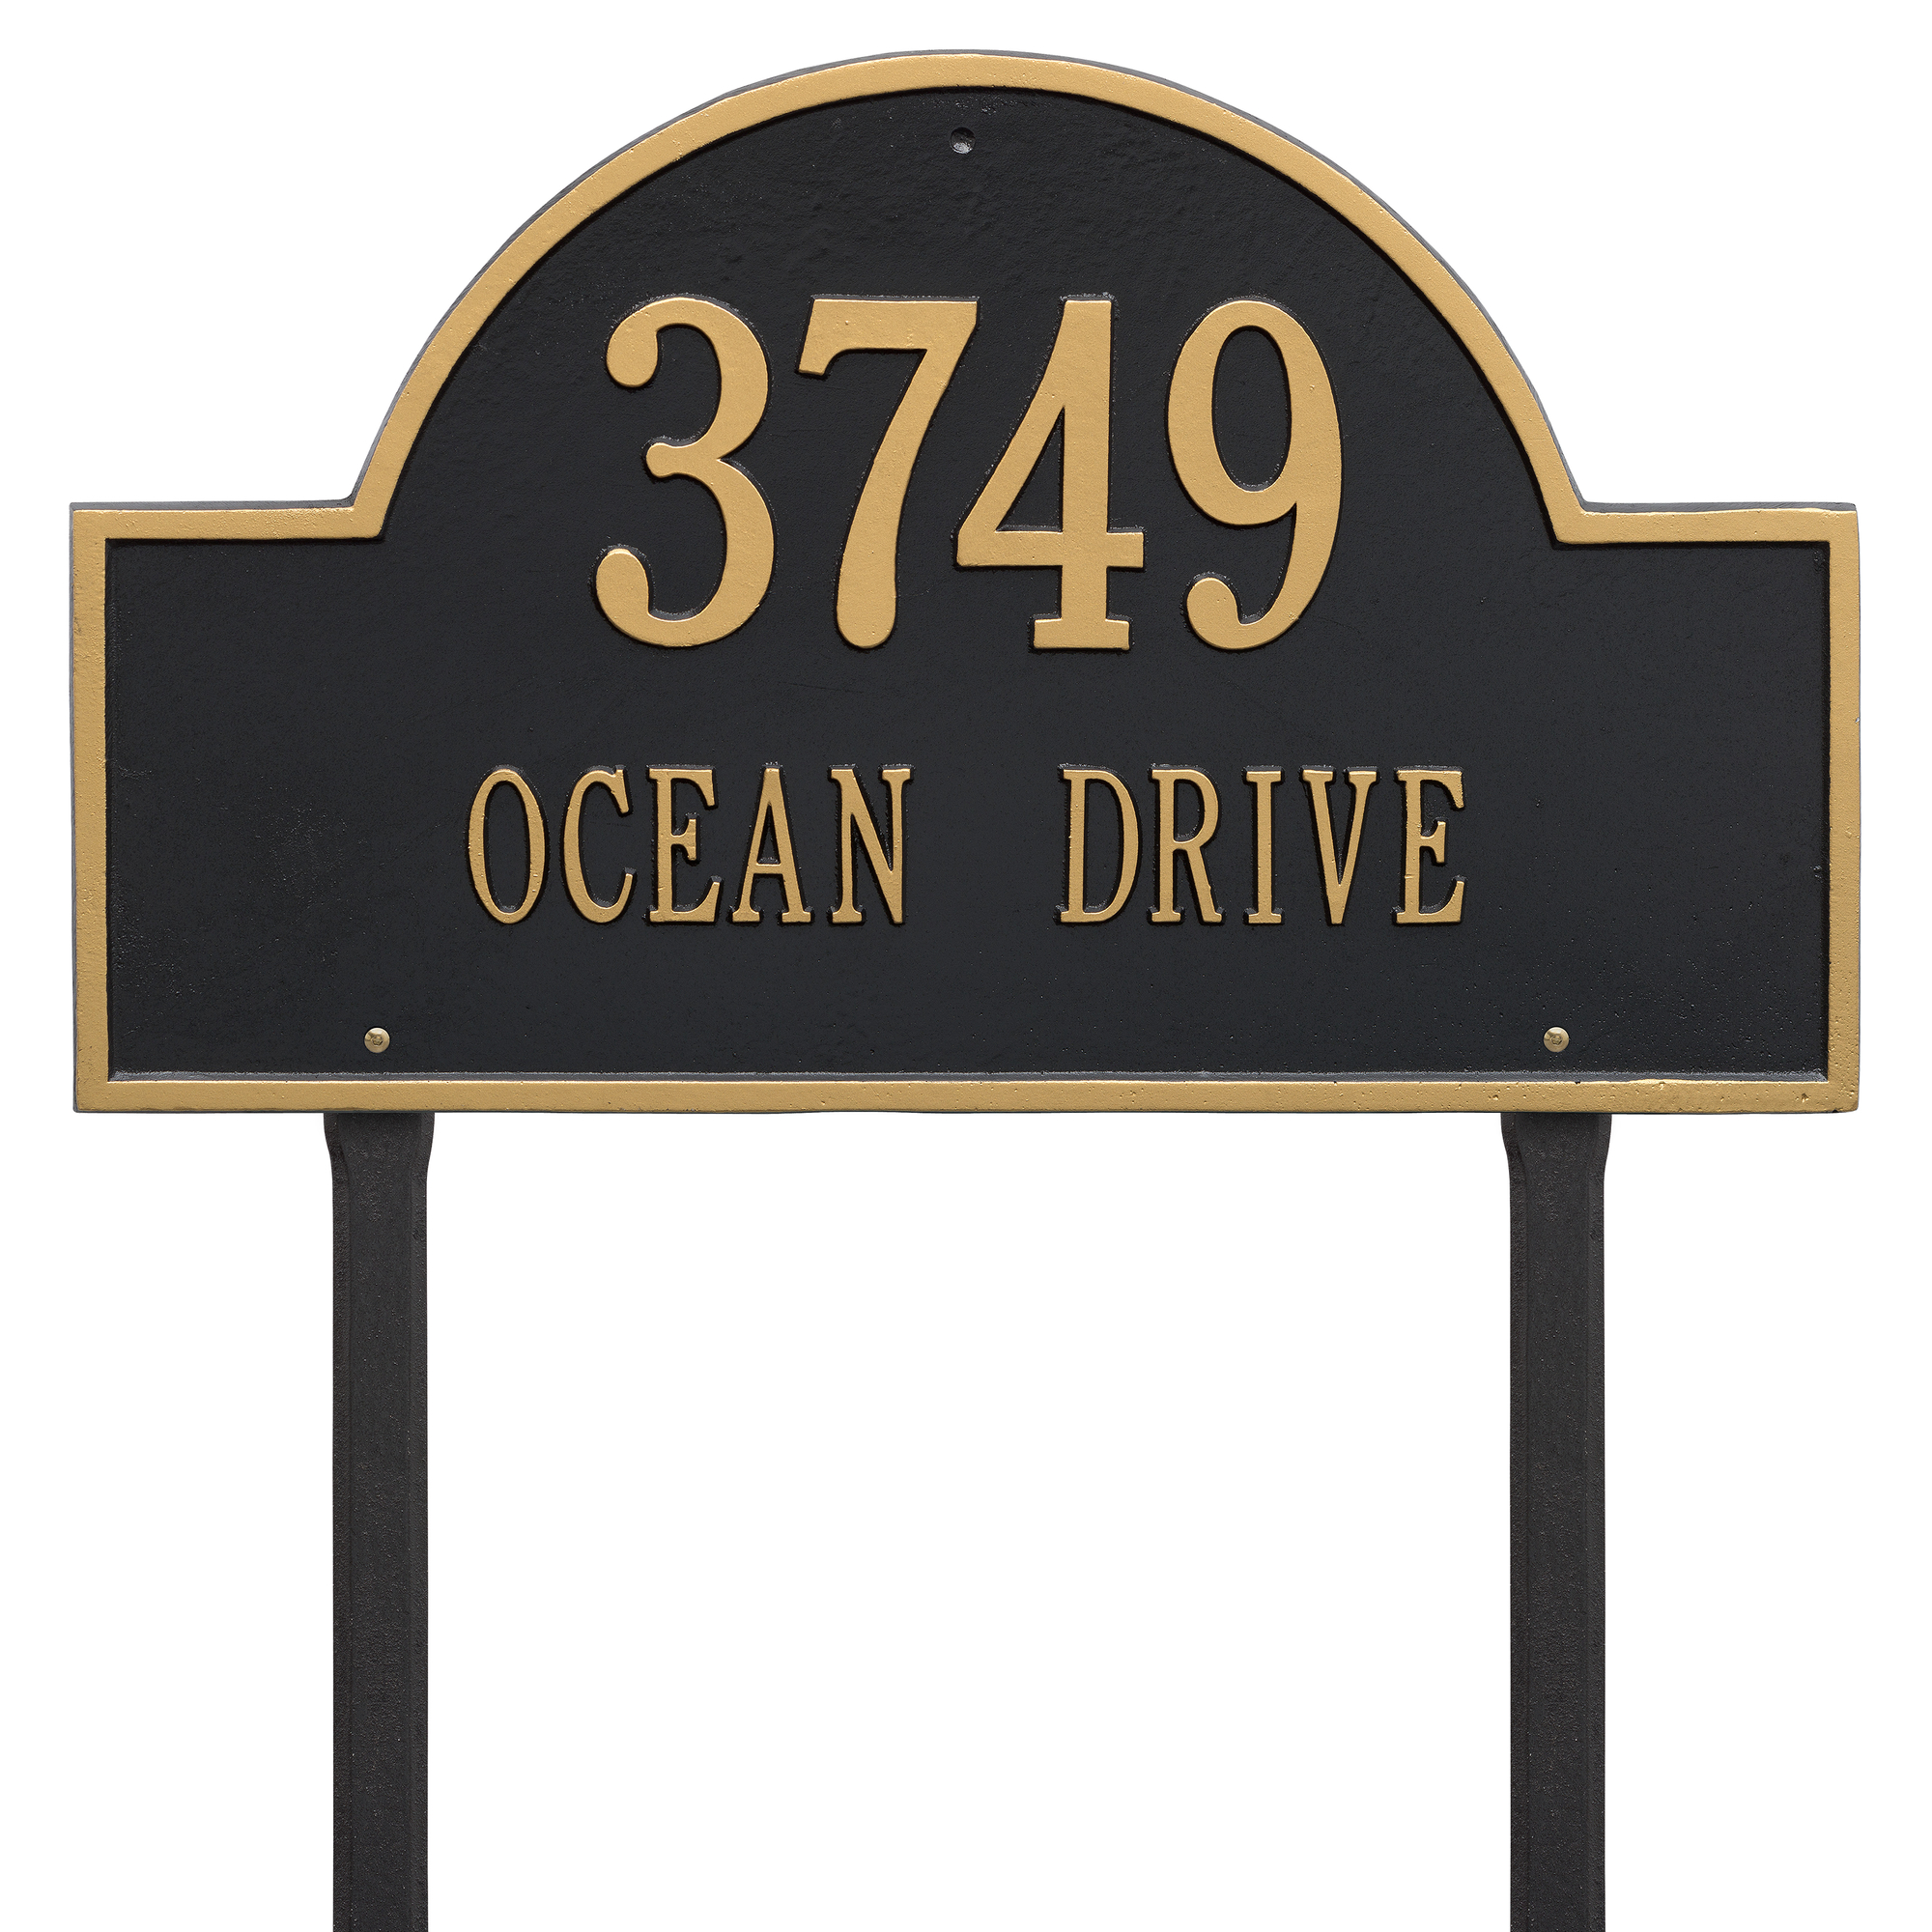 Personalized Whitehall Products Estate Lawn 2-Line Arch Marker in Black/Gold